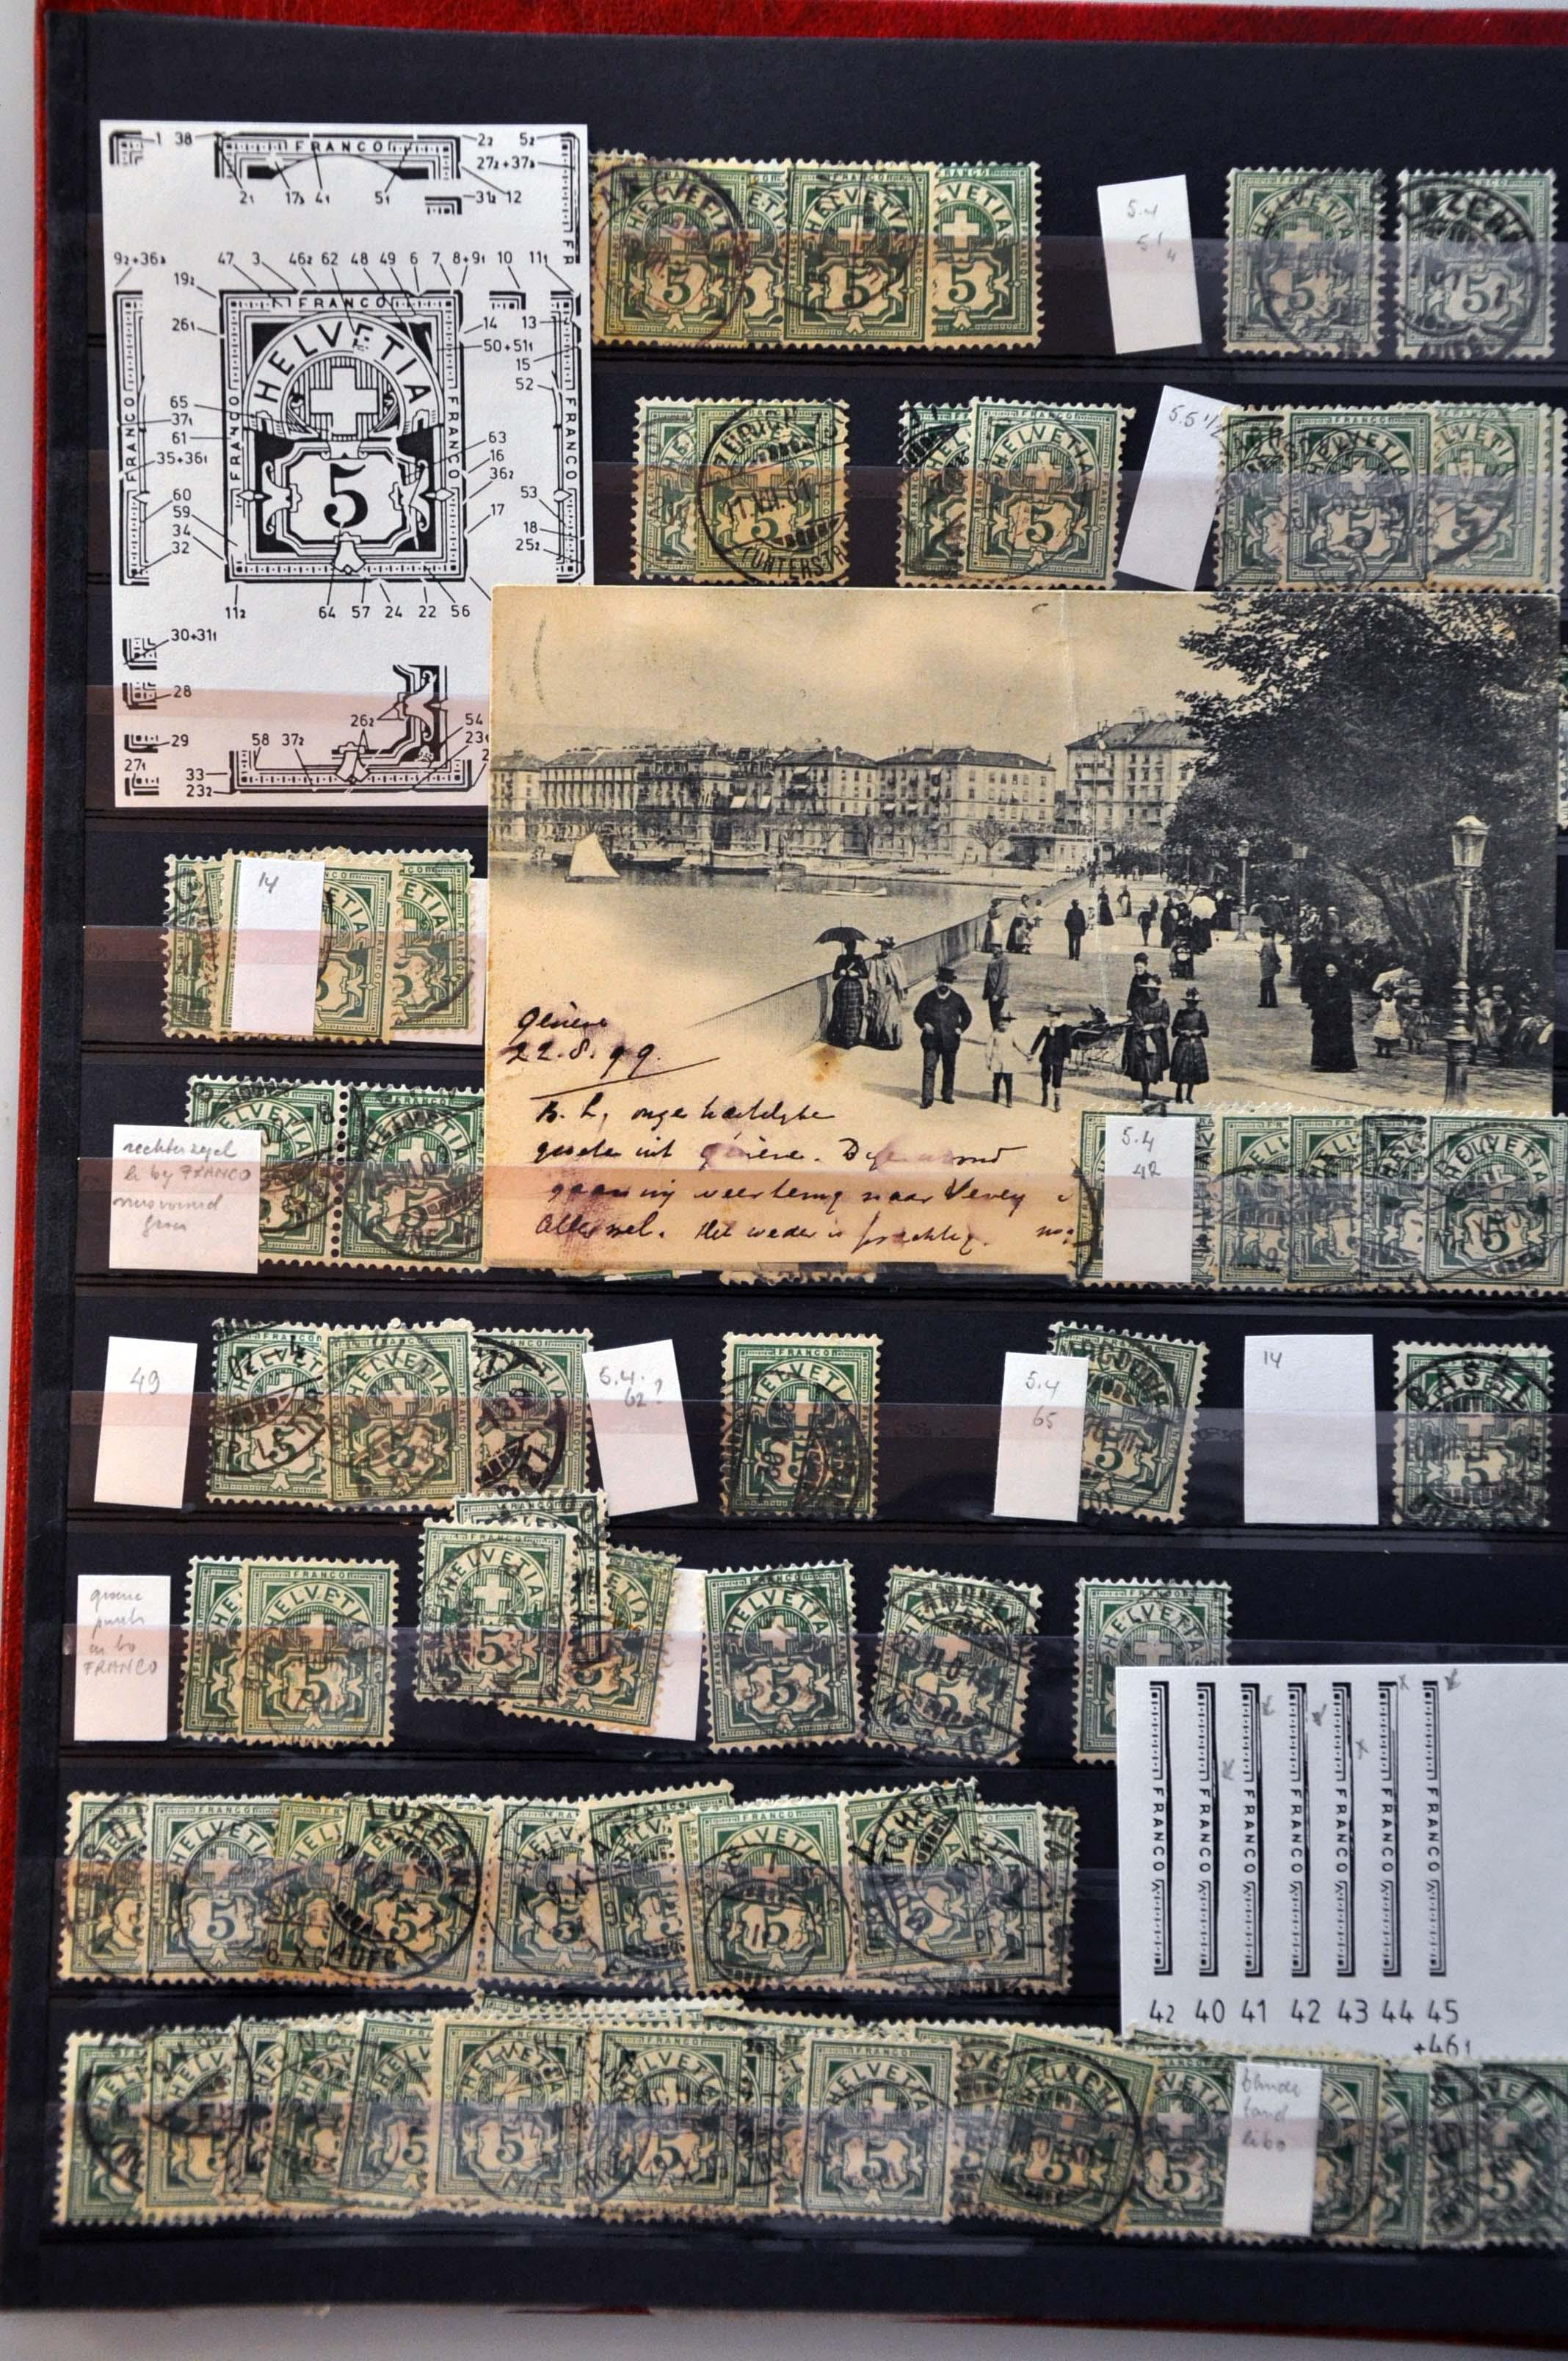 Lot 1346 - Switzerland Switzerland -  Corinphila Veilingen Auction 245-246 Day 2 - Foreign countries - Collections and lots, Foreign countries - Boxes and literature